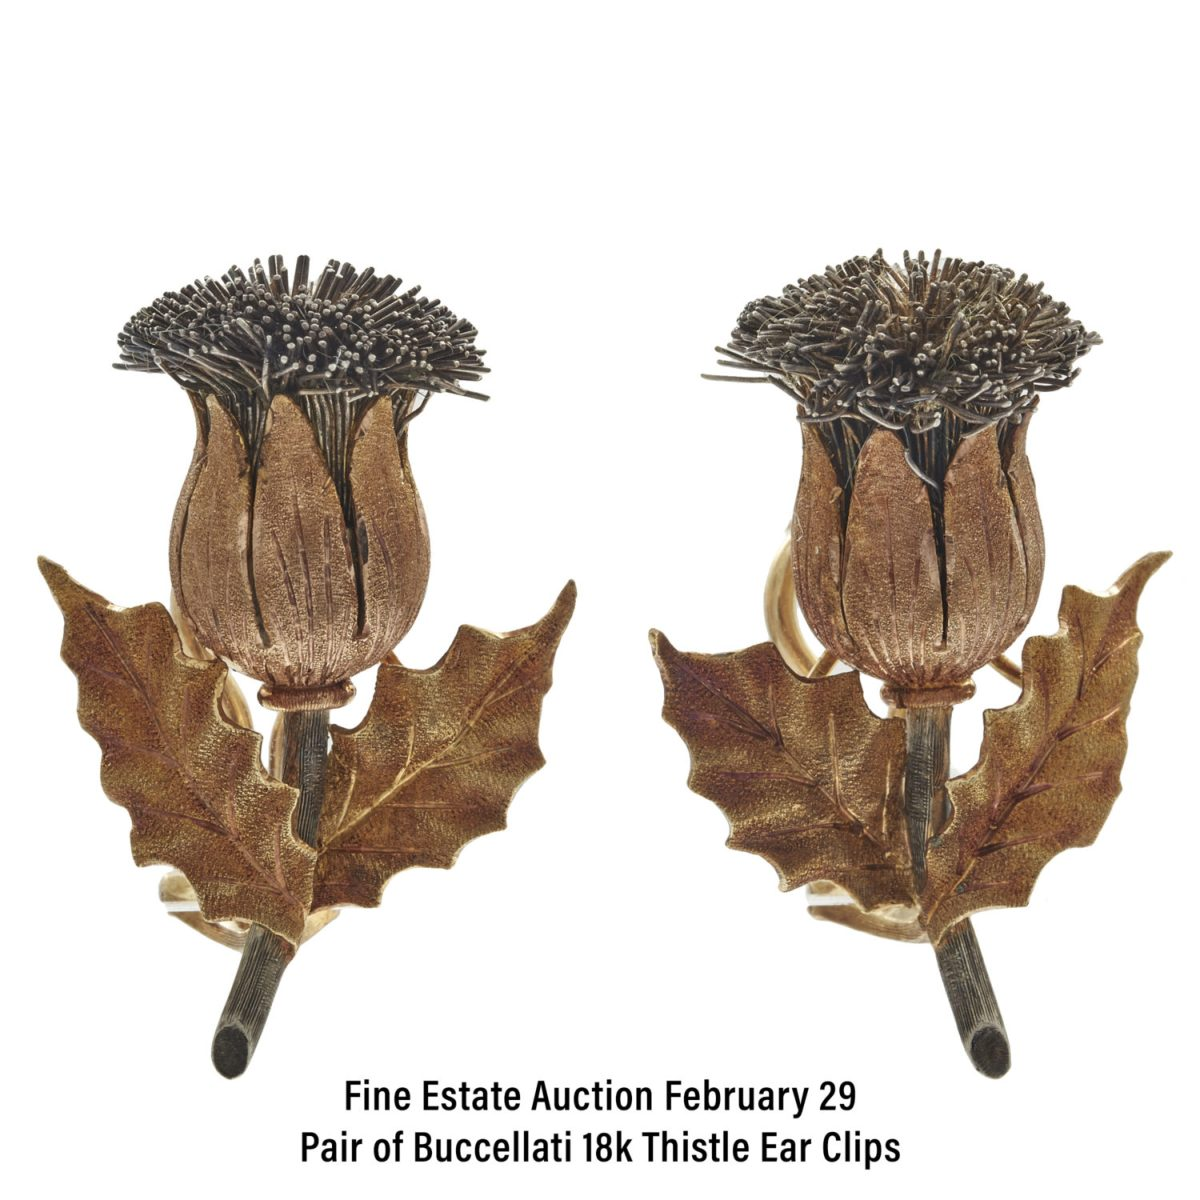 Pair of Buccellati 18k Thistle Ear Clips